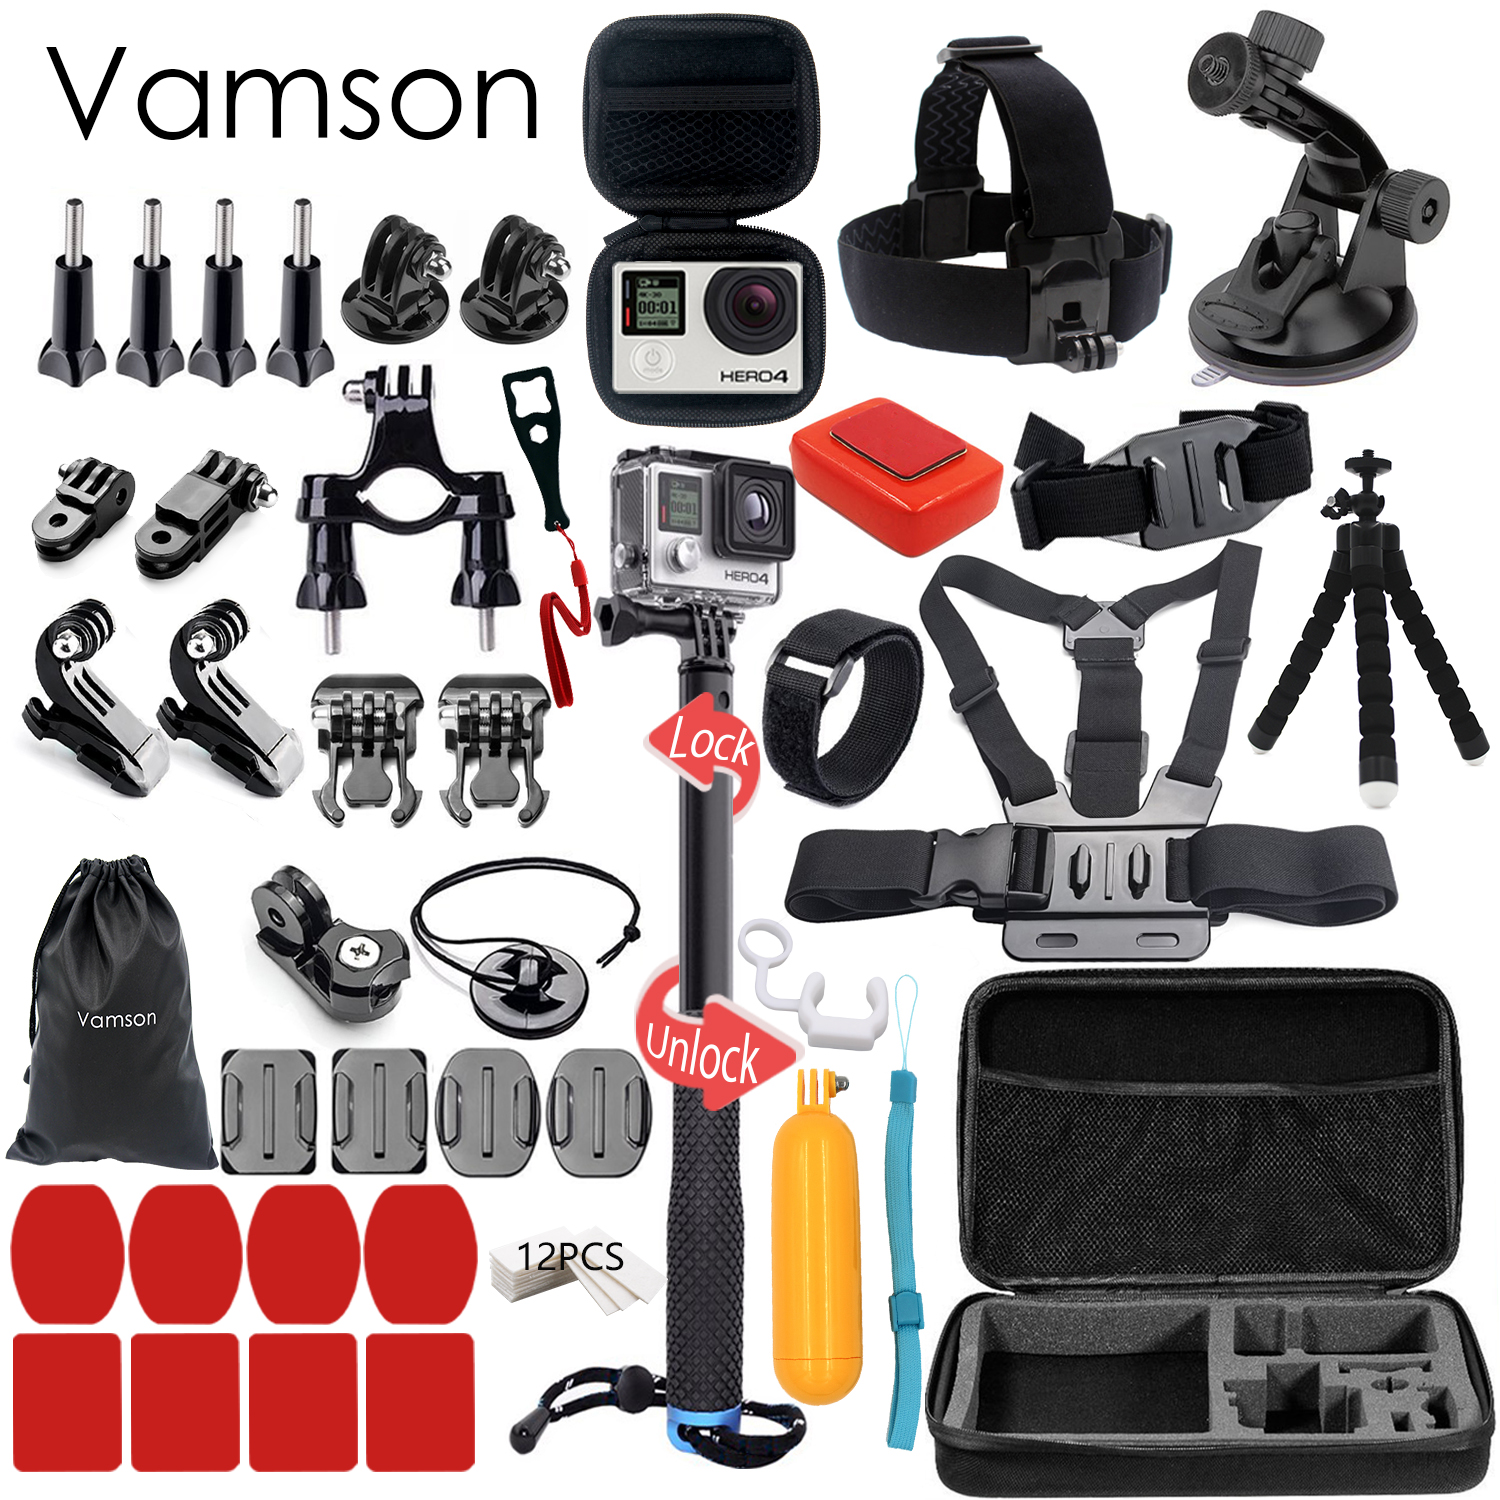 Vamson for Gopro Accessories Kit For Gopro Hero 6 5 Hero 4 Hero3 for Xiaomi for yi SJCAM SJ4000  VS88 ri 008 activity connection chain accessories for gopro hero 4 3 3